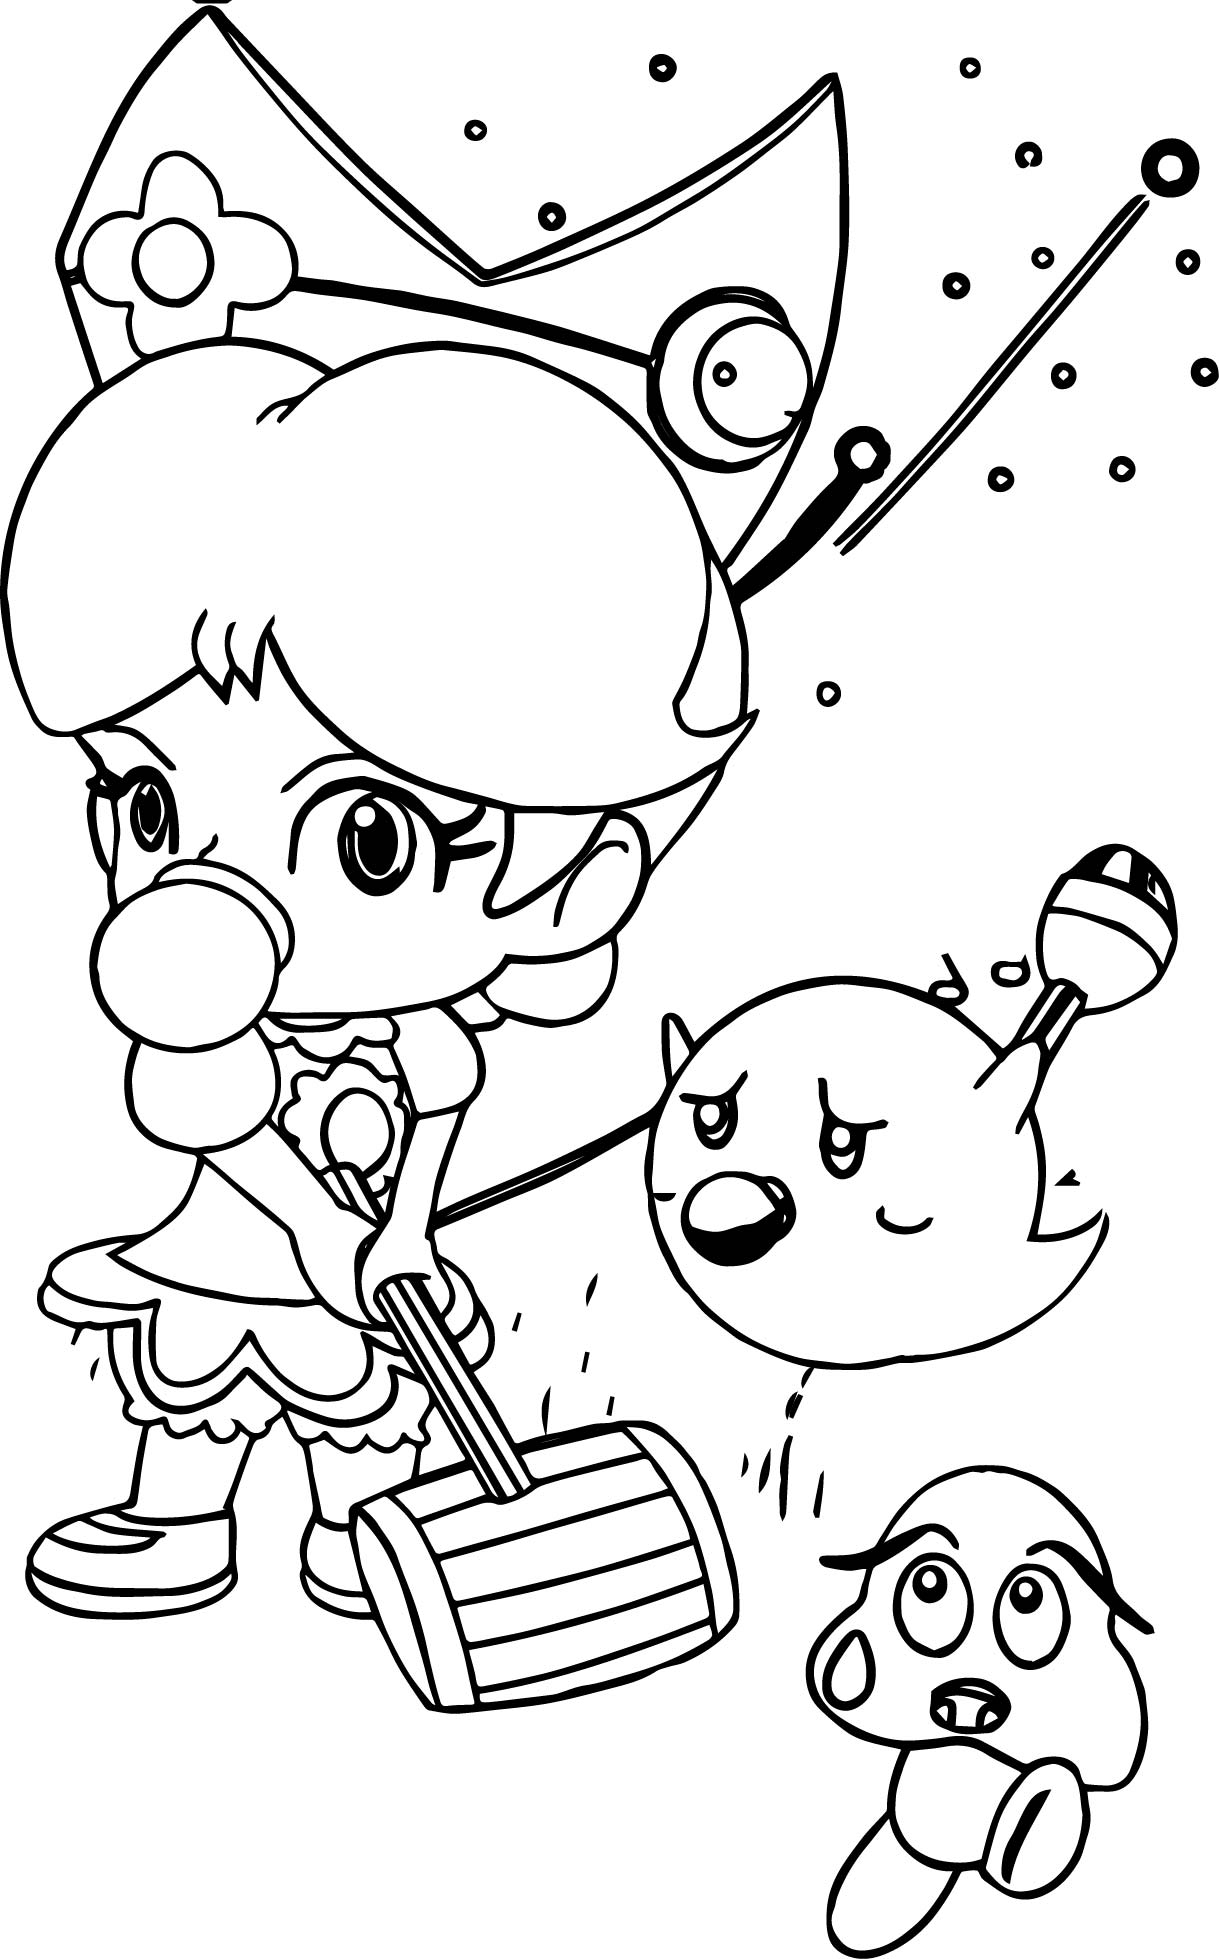 Baby Daisy And Friends Coloring Page